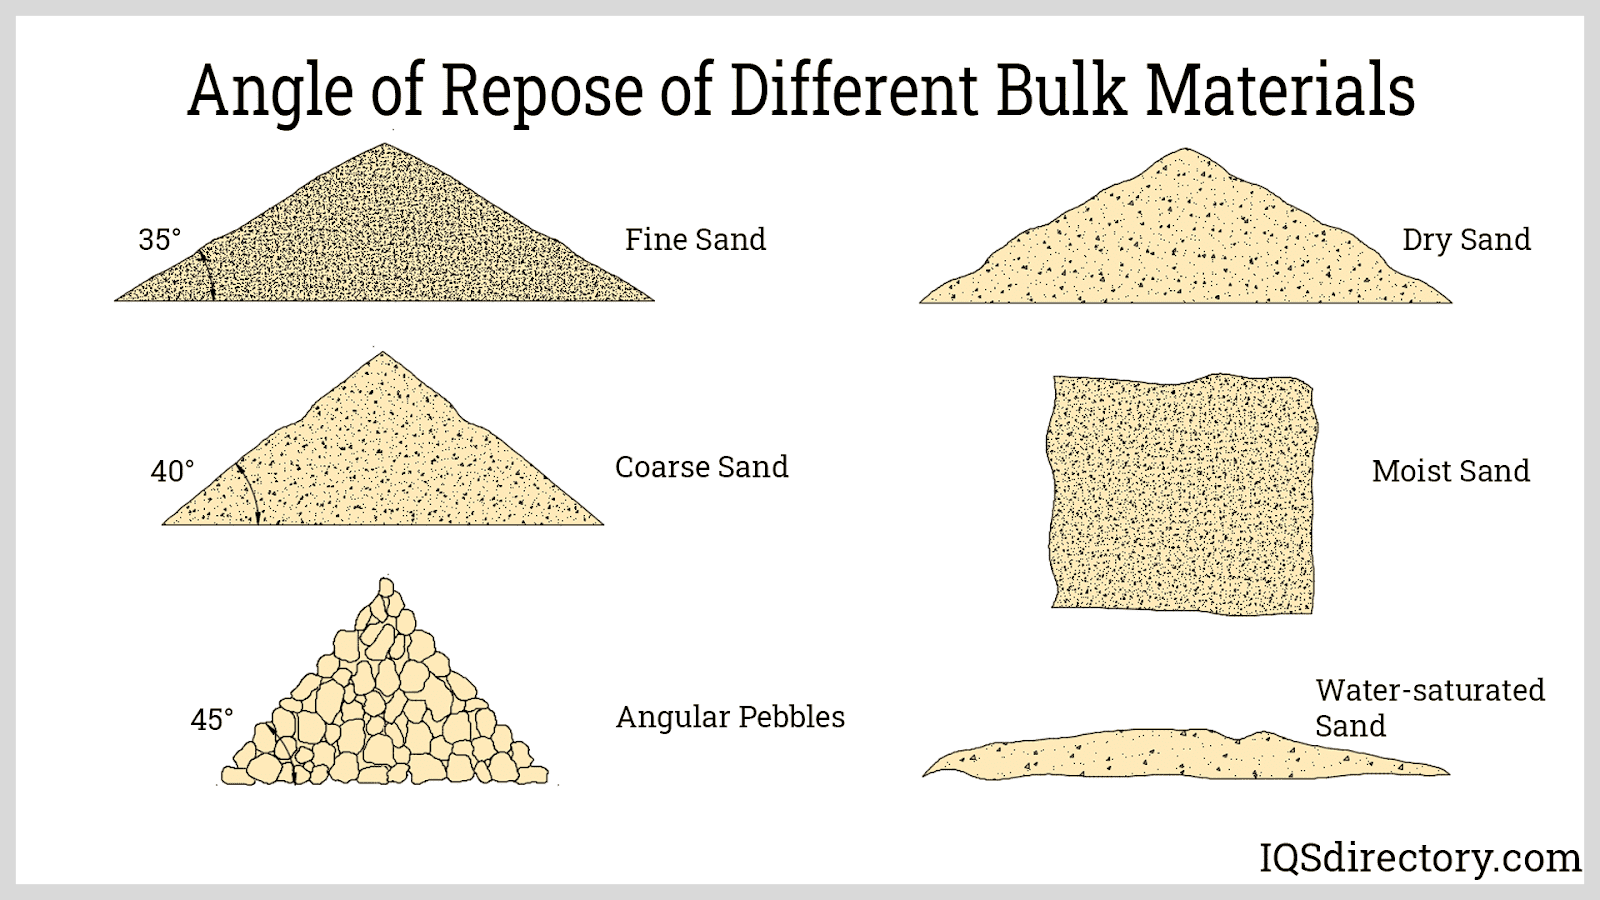 Angle of Repose of Different Bulk Materials